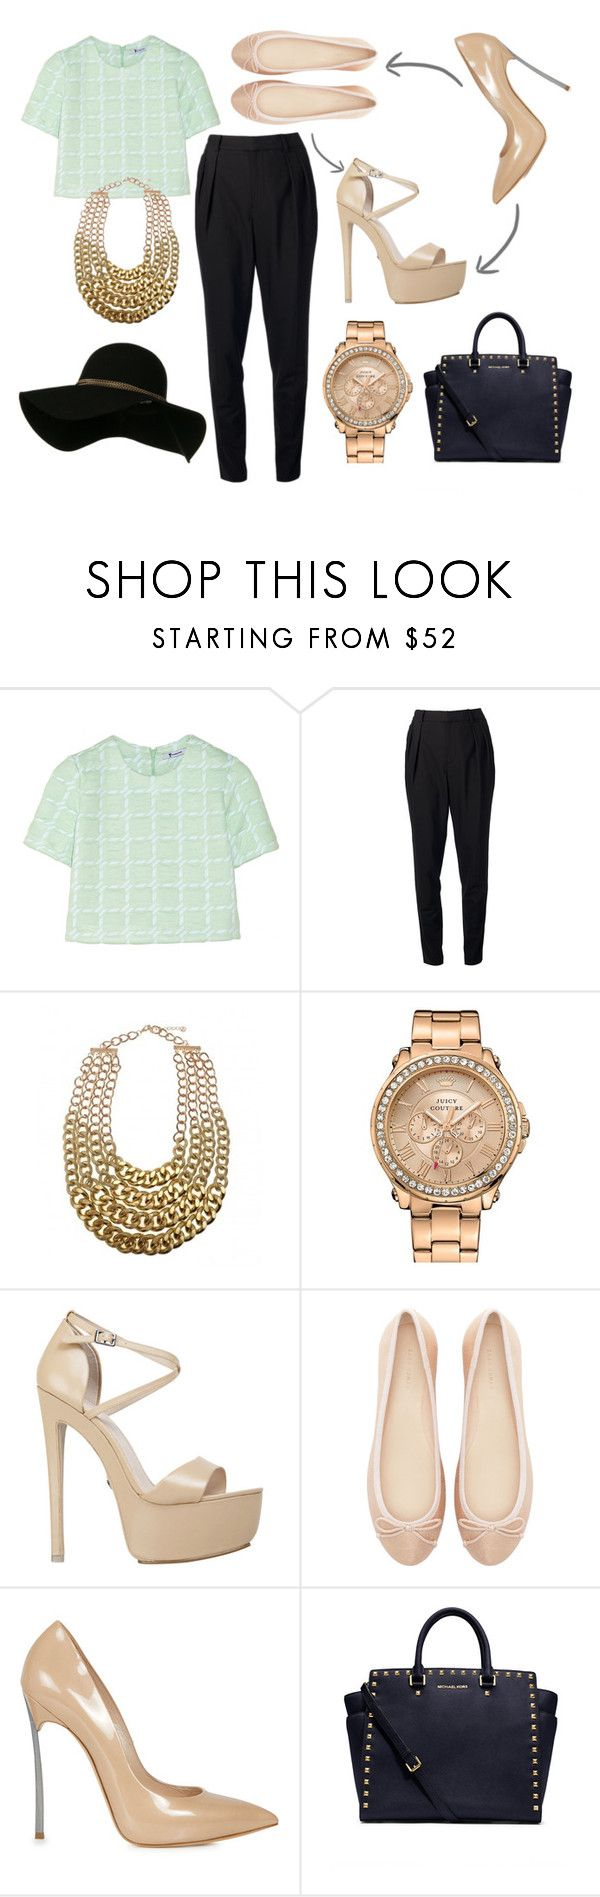 """""""Flats or Heels?"""" by mariam-magana ❤ liked on Polyvore featuring T By Alexander Wang, Helmut Lang, Juicy Couture, KG Kurt Geiger, Zara, Casadei and MICHAEL Michael Kors"""